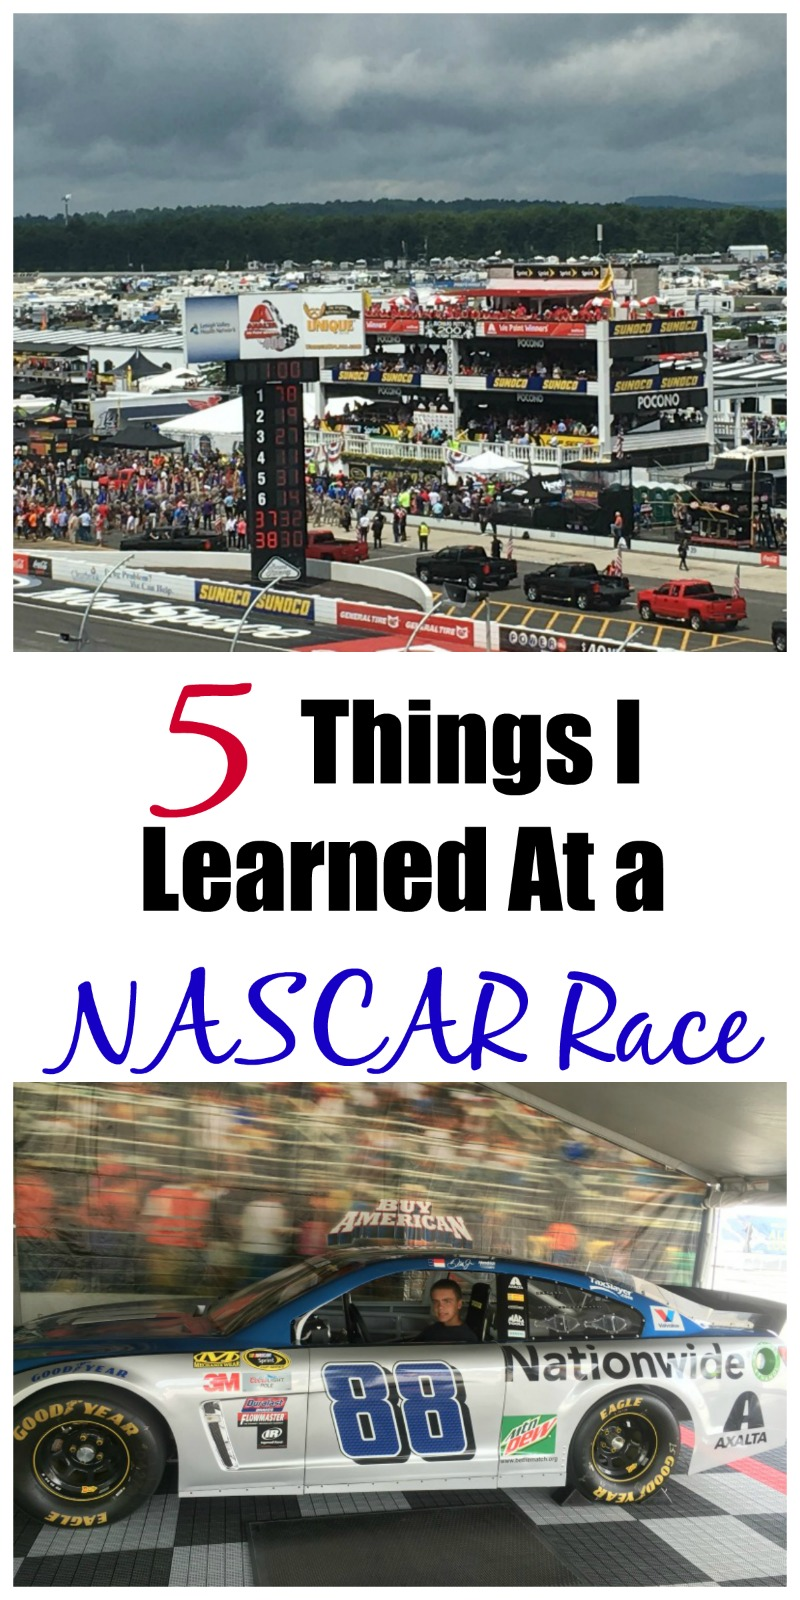 5 Things I Learned at a NASCAR Race!